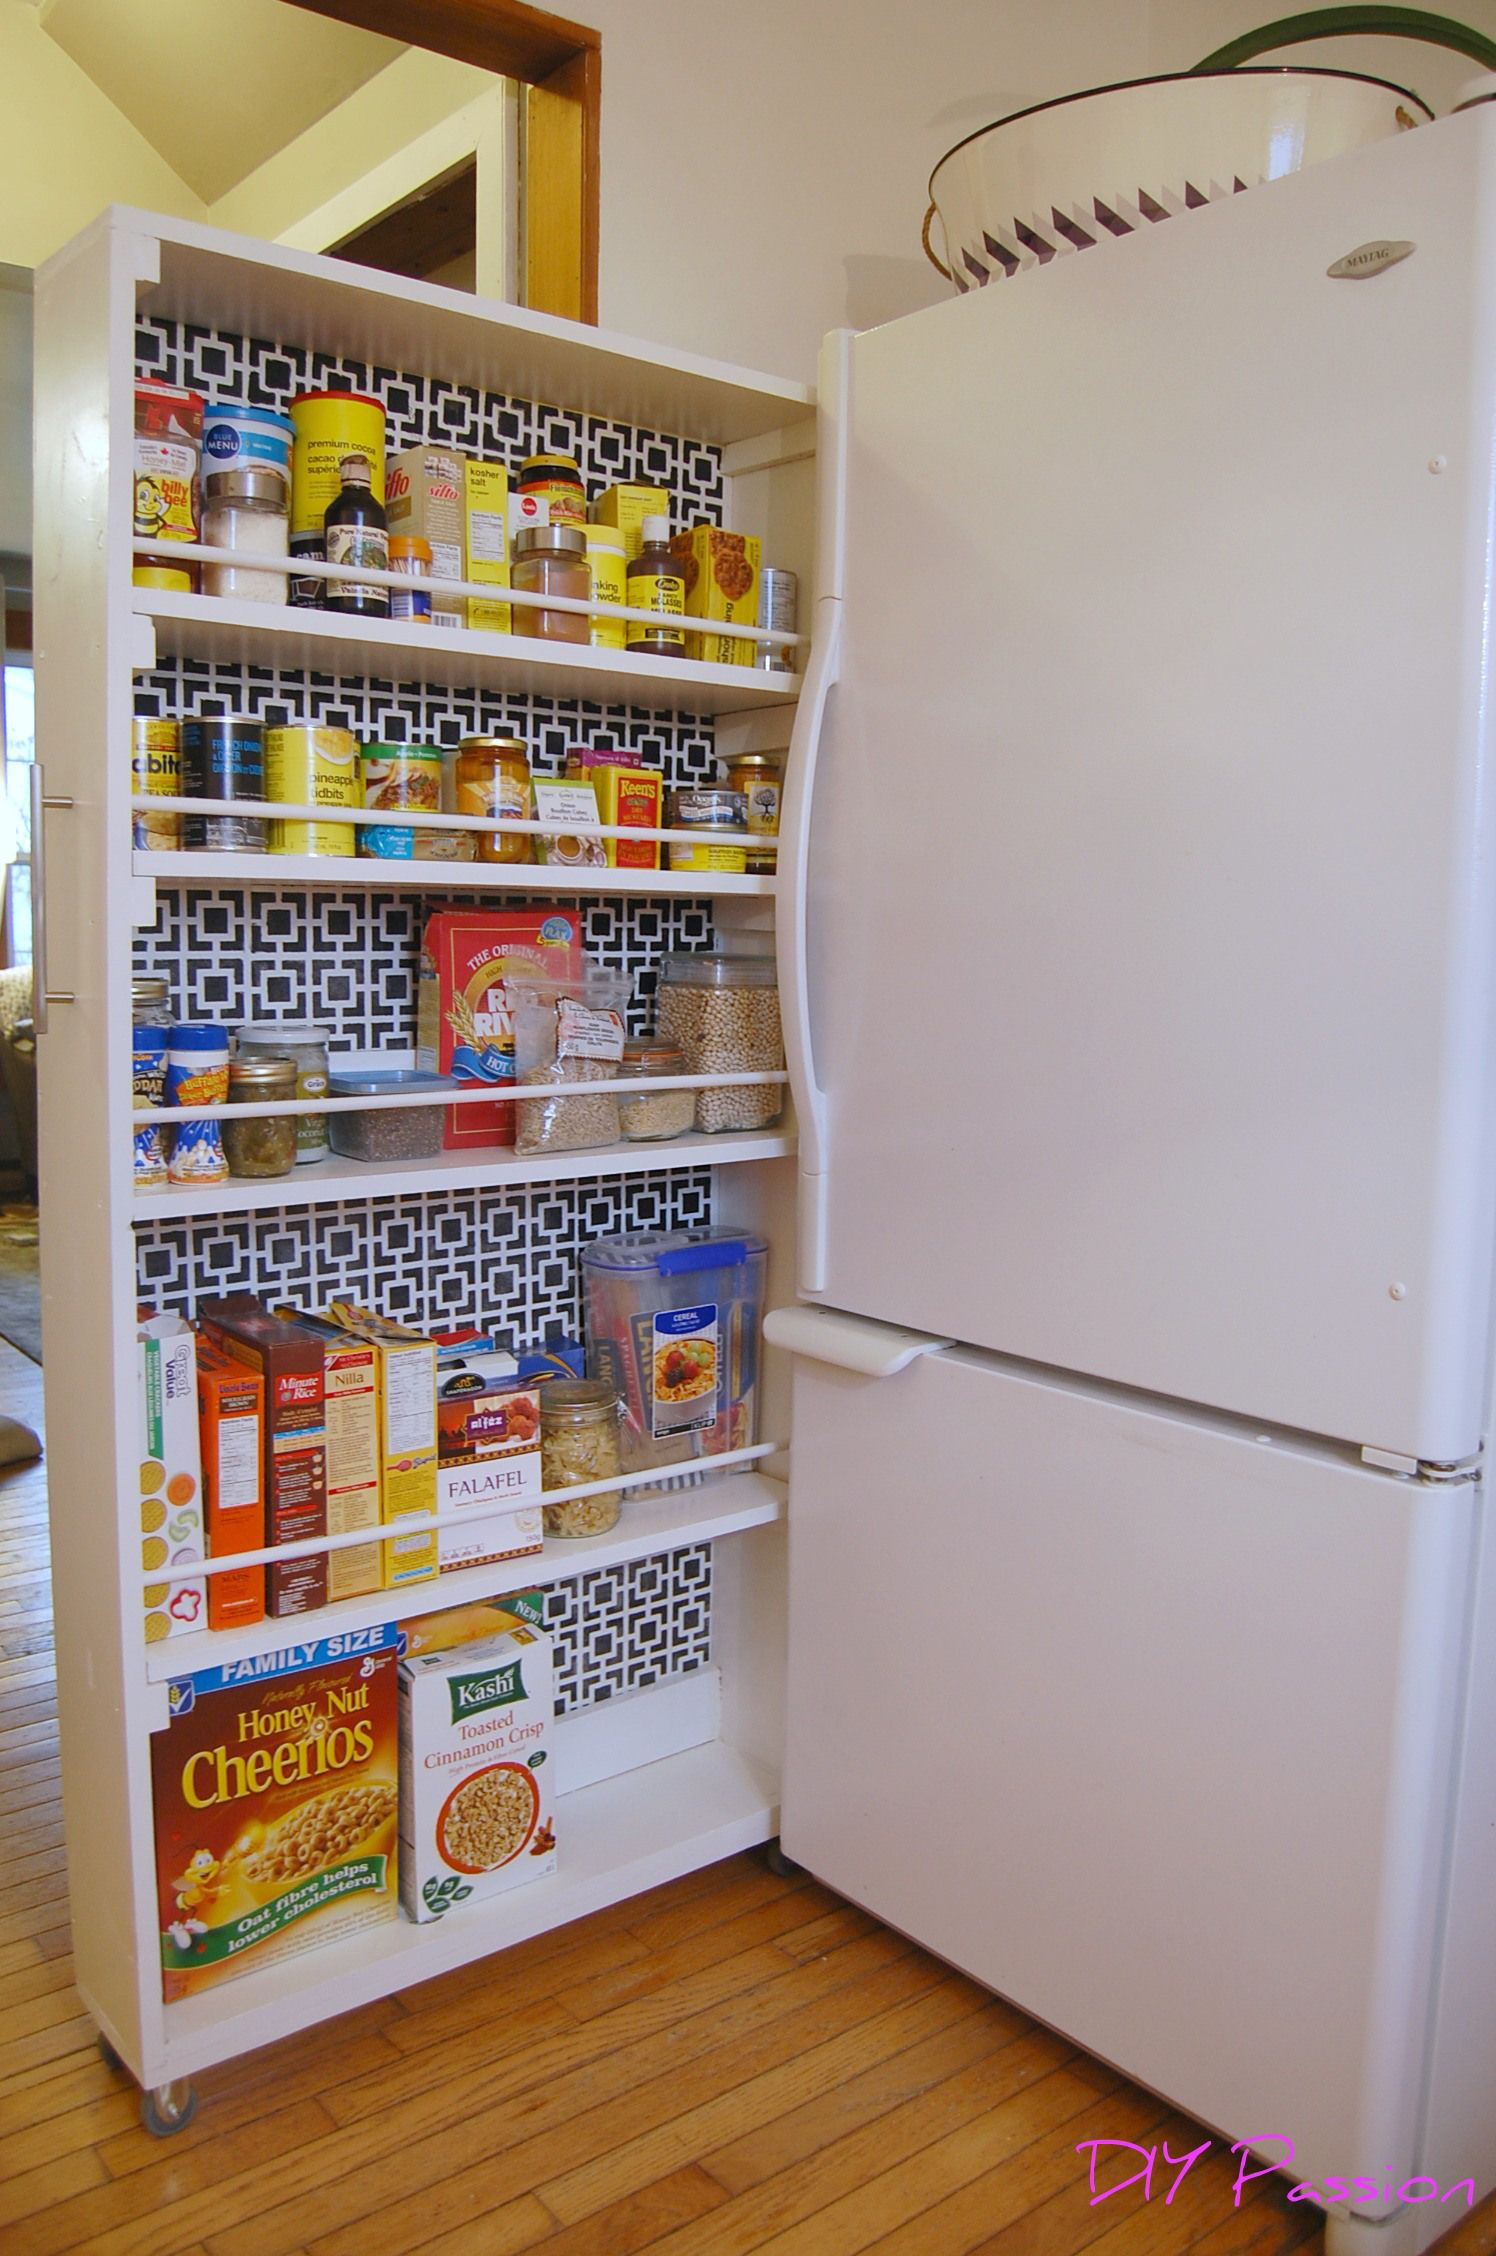 Small space storage solution kitchens pantry and small room interior